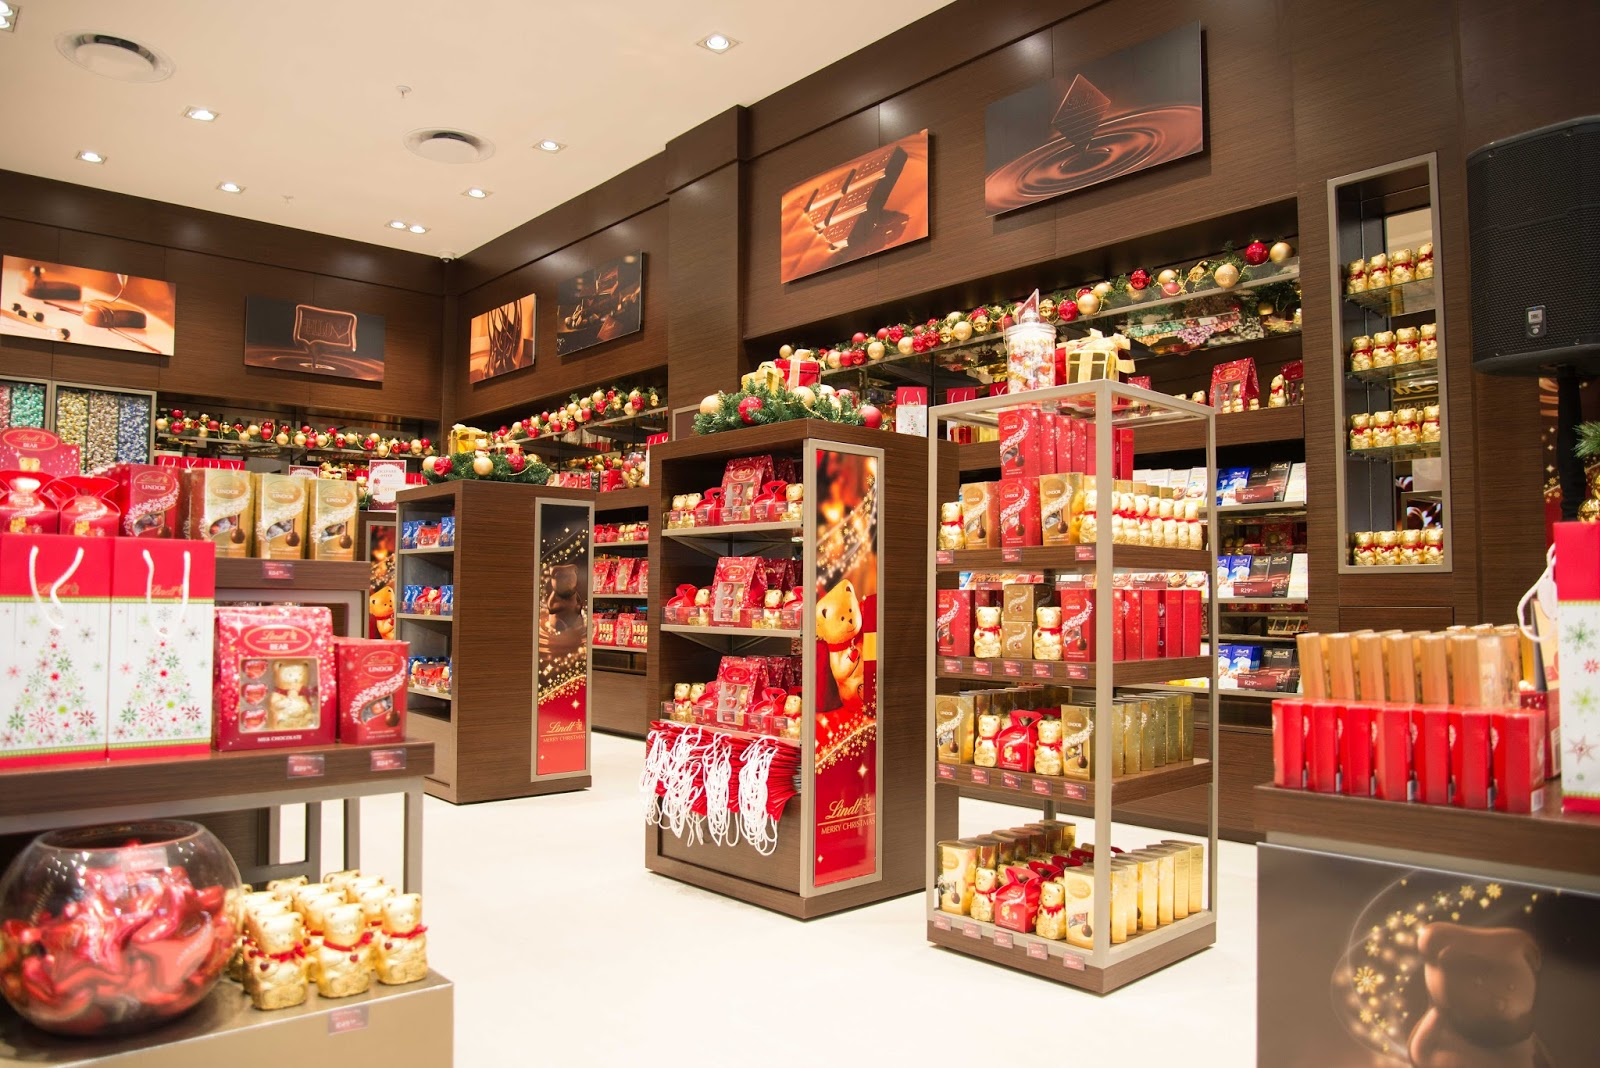 Discover the world of chocolate with Lindt & Sprungli; find our entire range of chocolates, recipes, news and UK events at the world of Lindt.